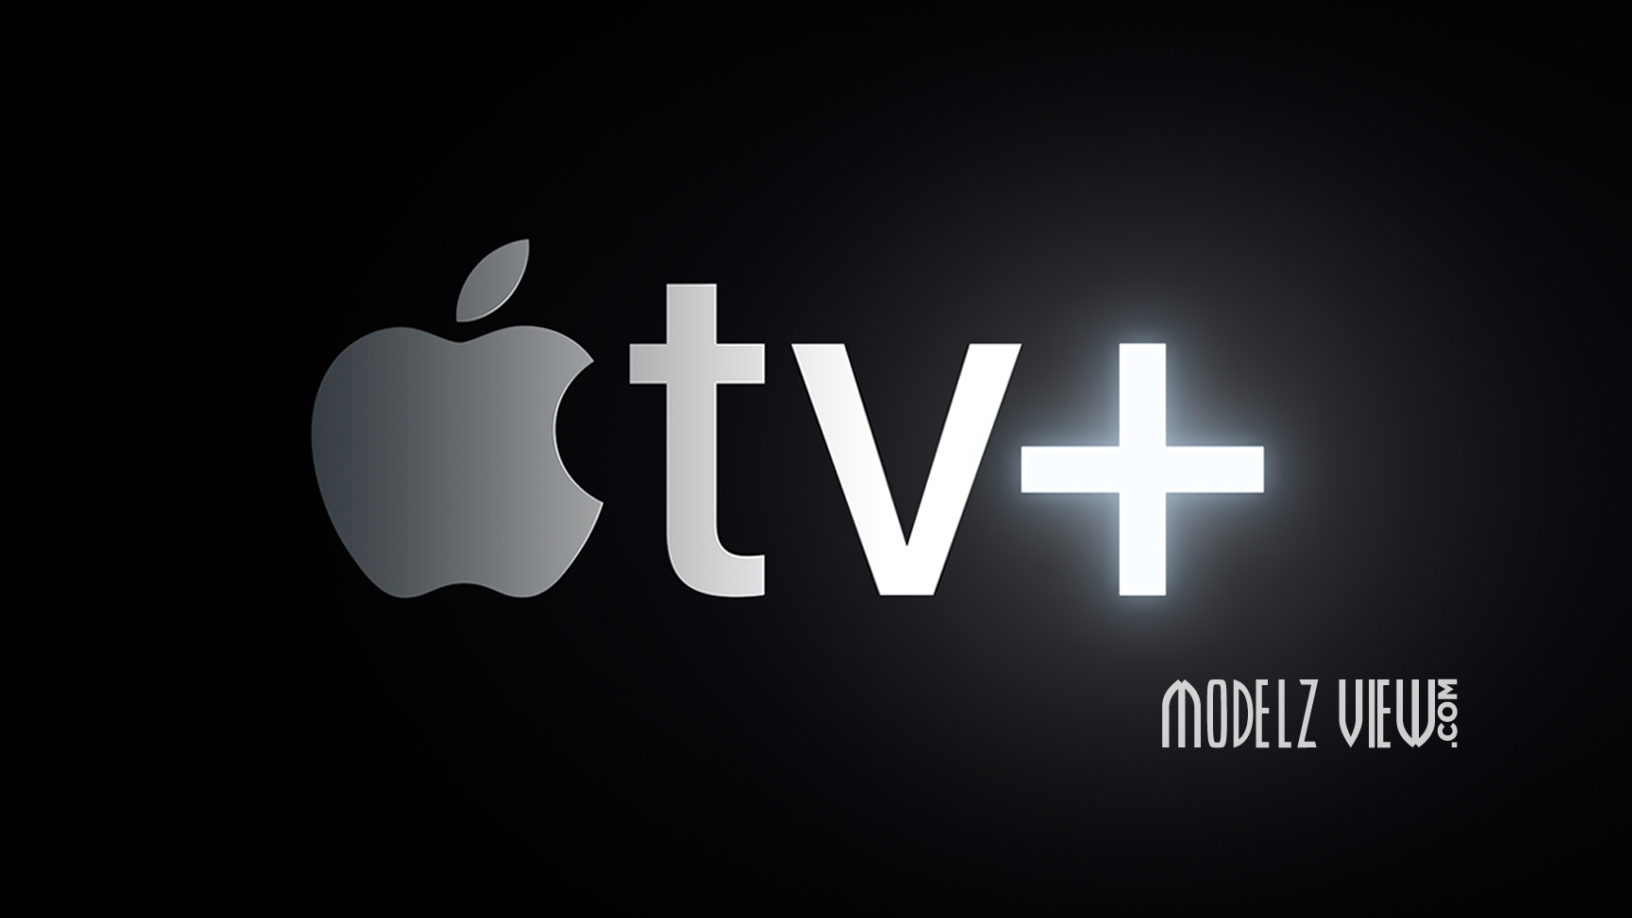 Apple unveils Apple TV+, the new home for the world's most creative storytellers